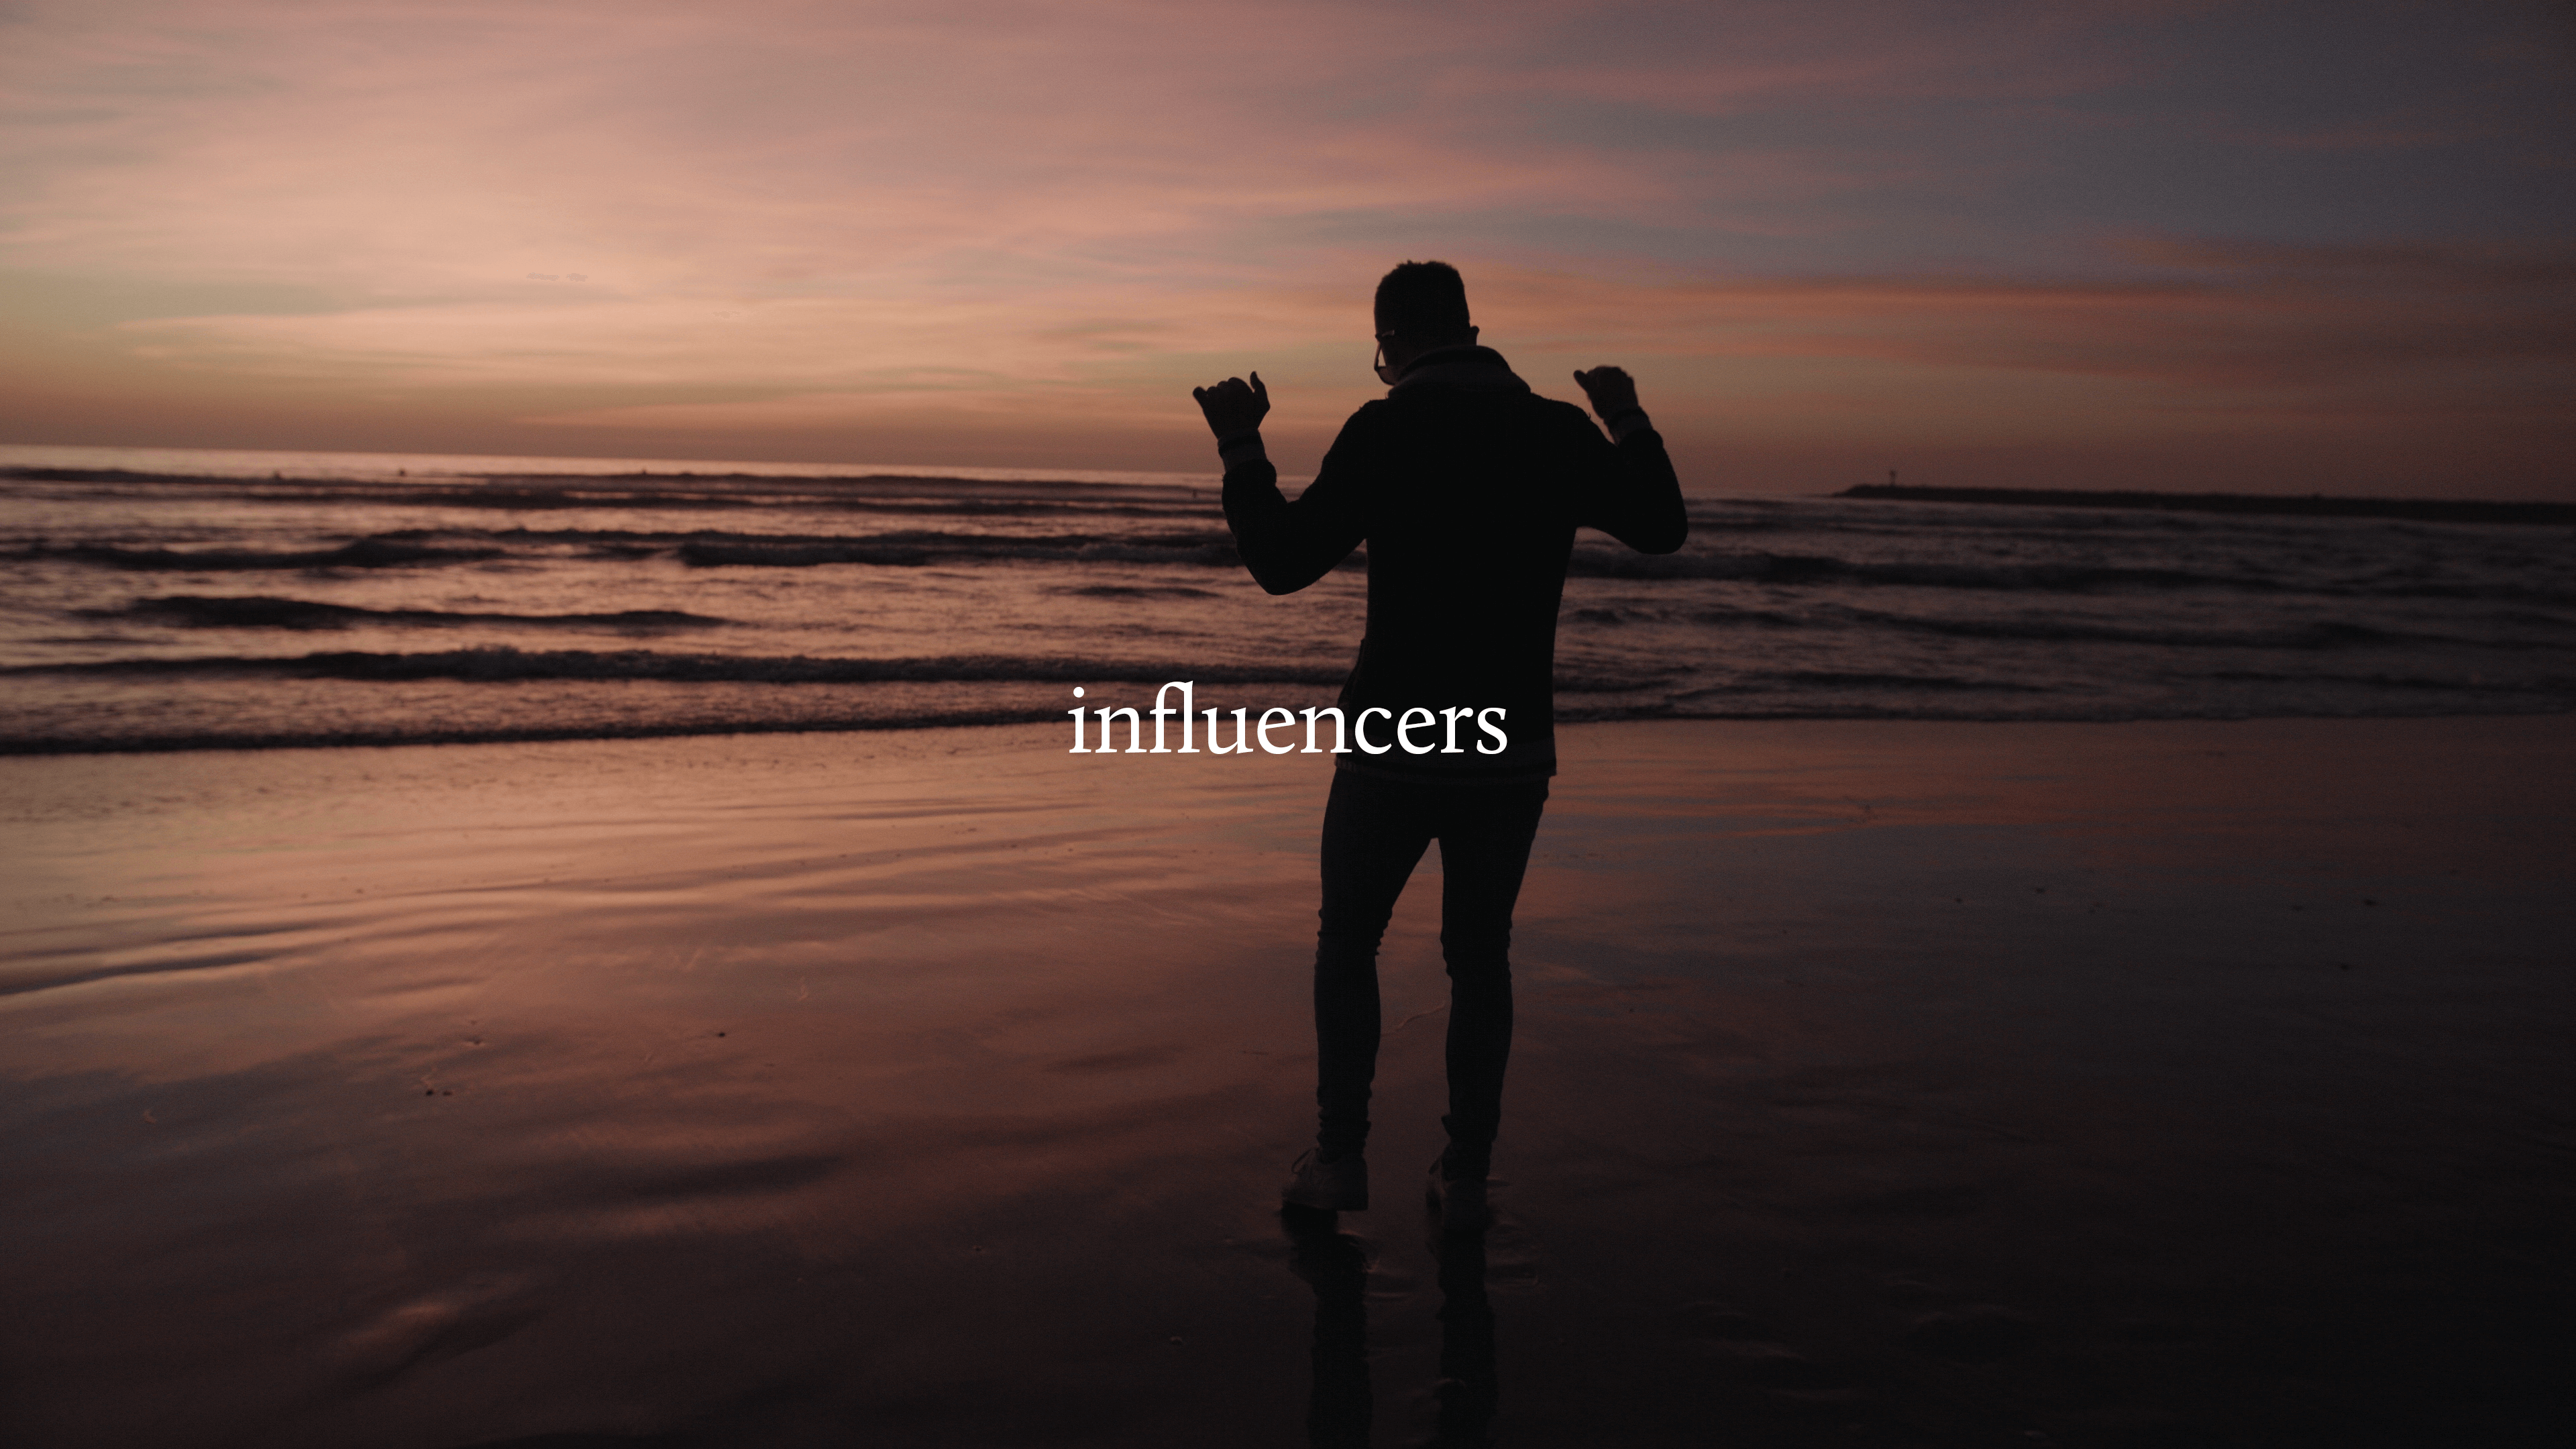 Sermon Series Ideas #10: Influencers